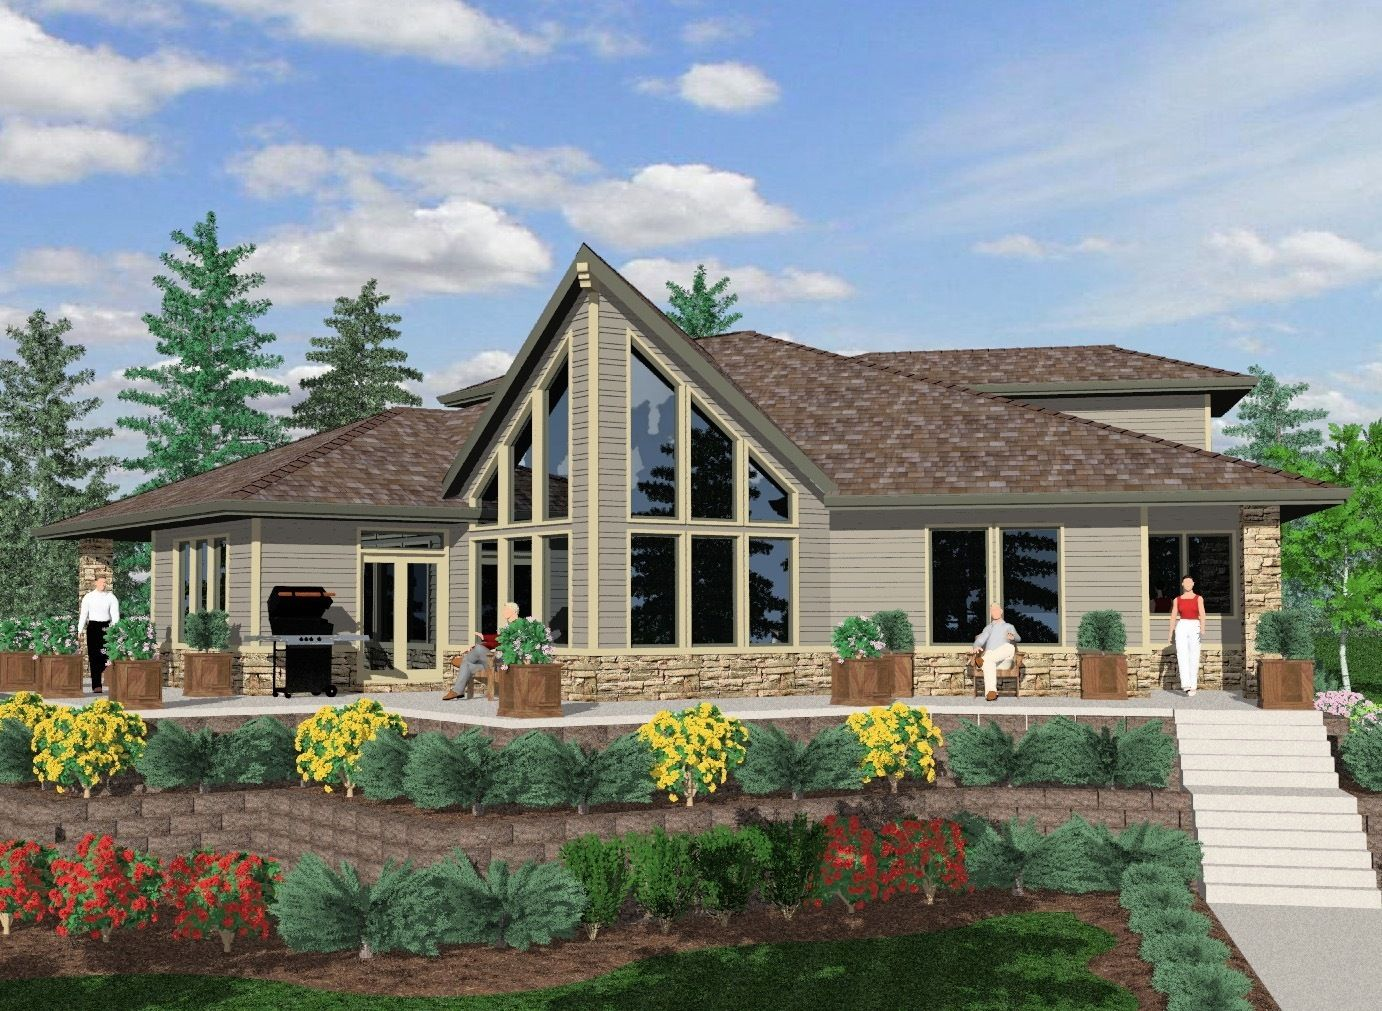 Home Plans For Mountainside Texas Hill Country House Plans Country House Plans Vacation House Plans